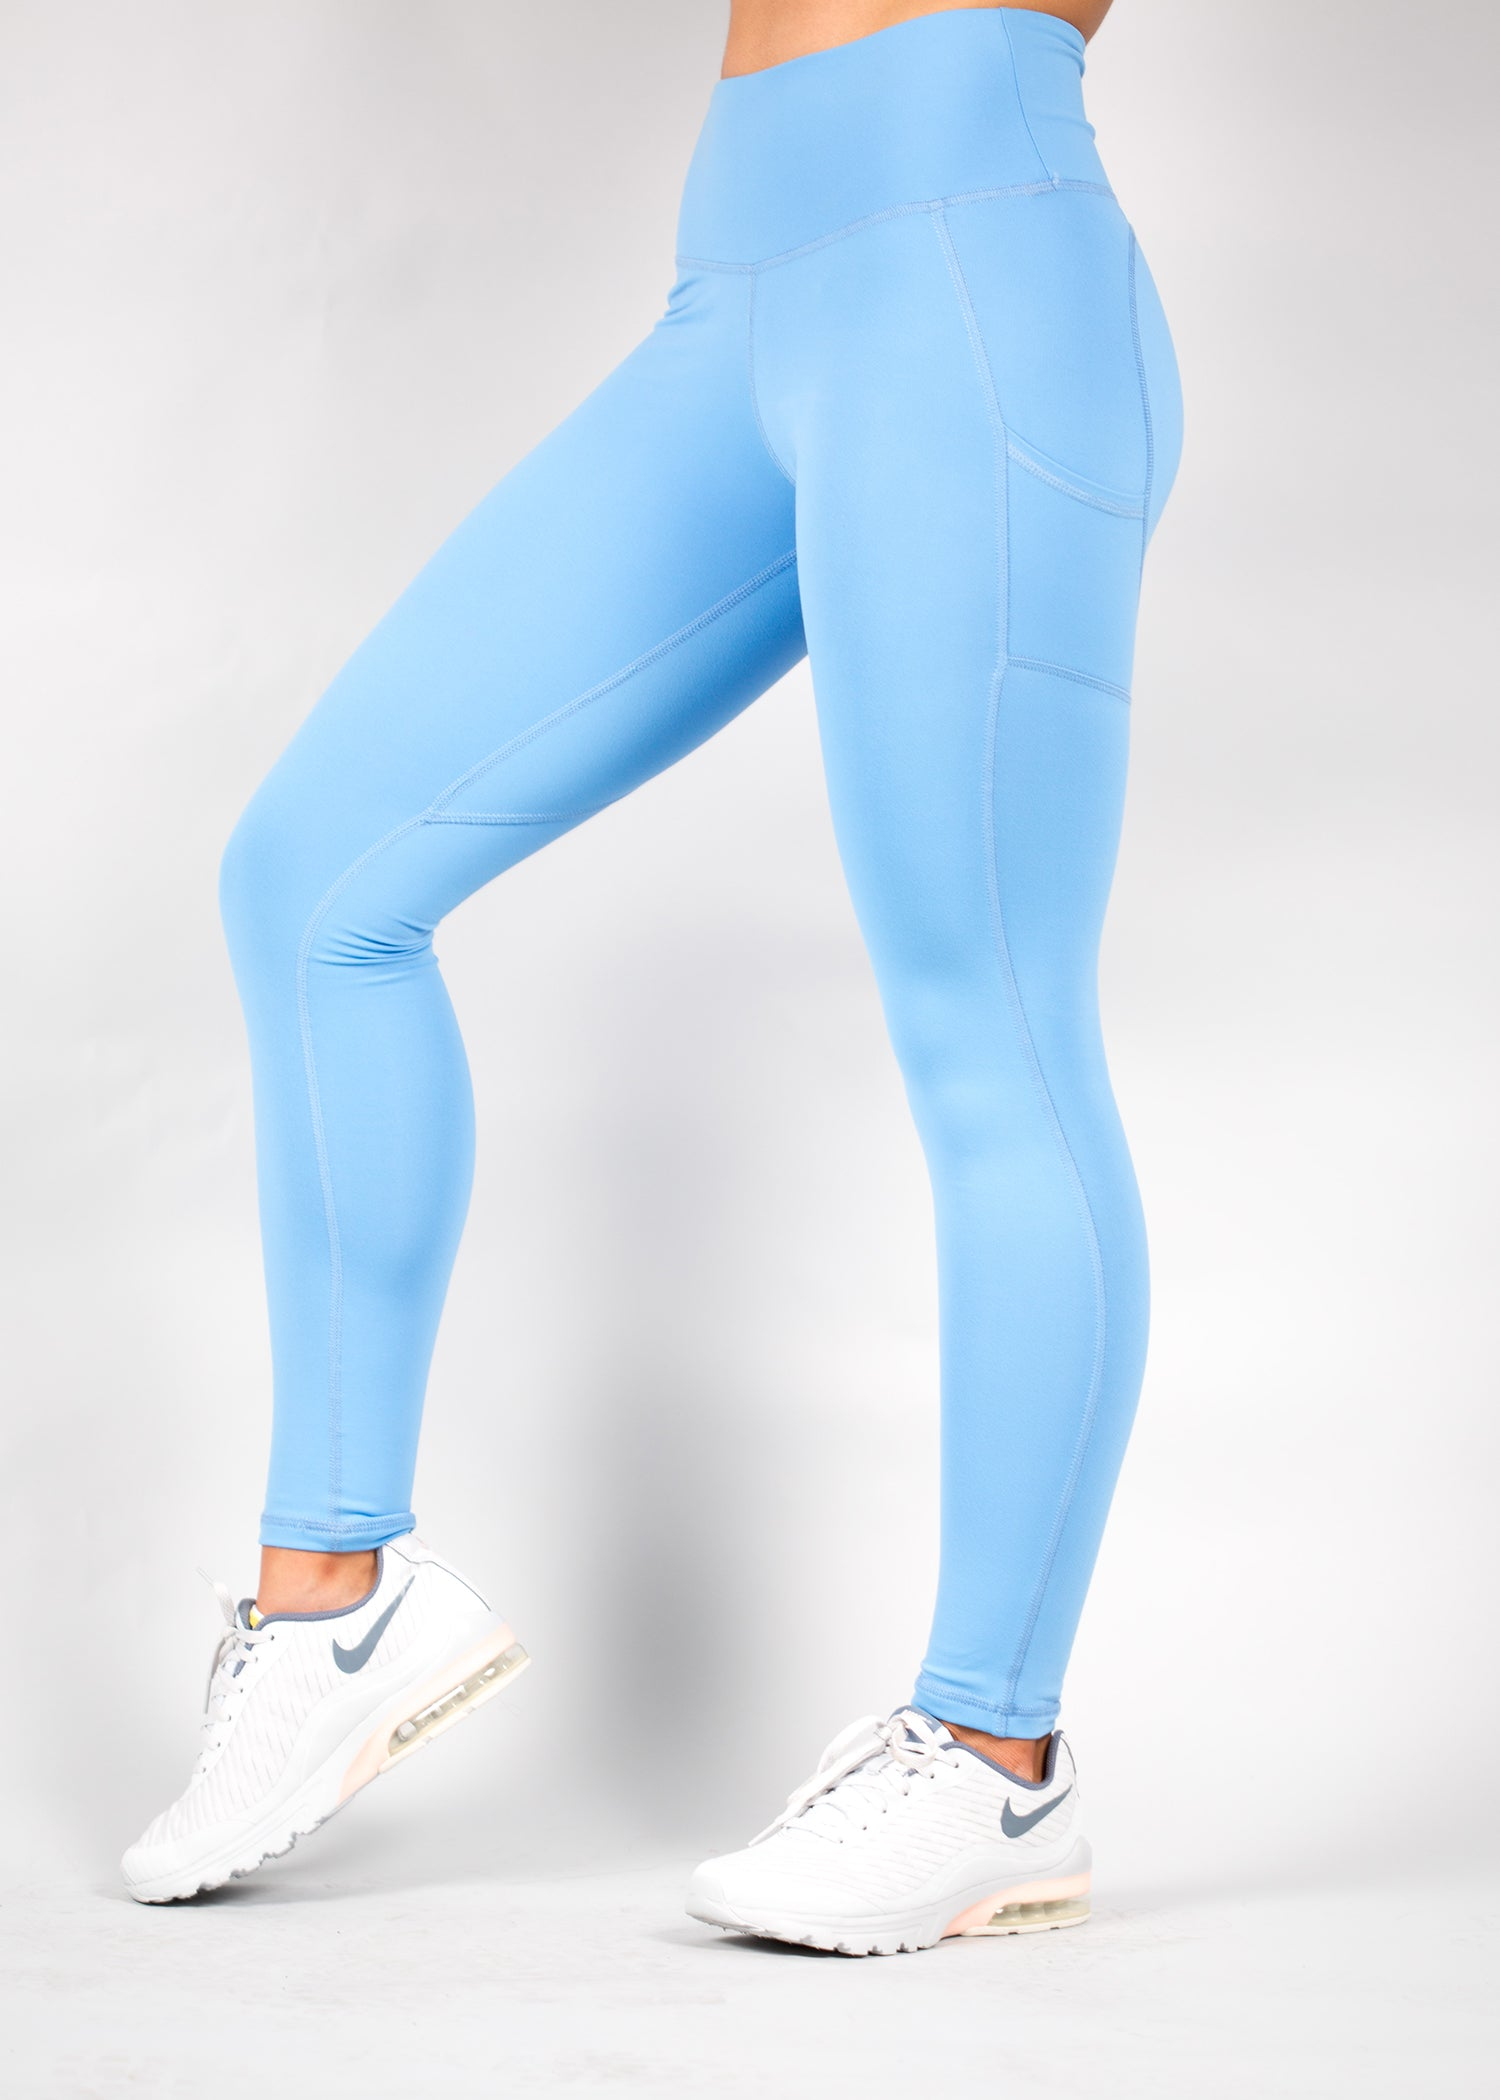 LIGHT BLUE HEARTCORE SIDE POCKET LEGGINGS